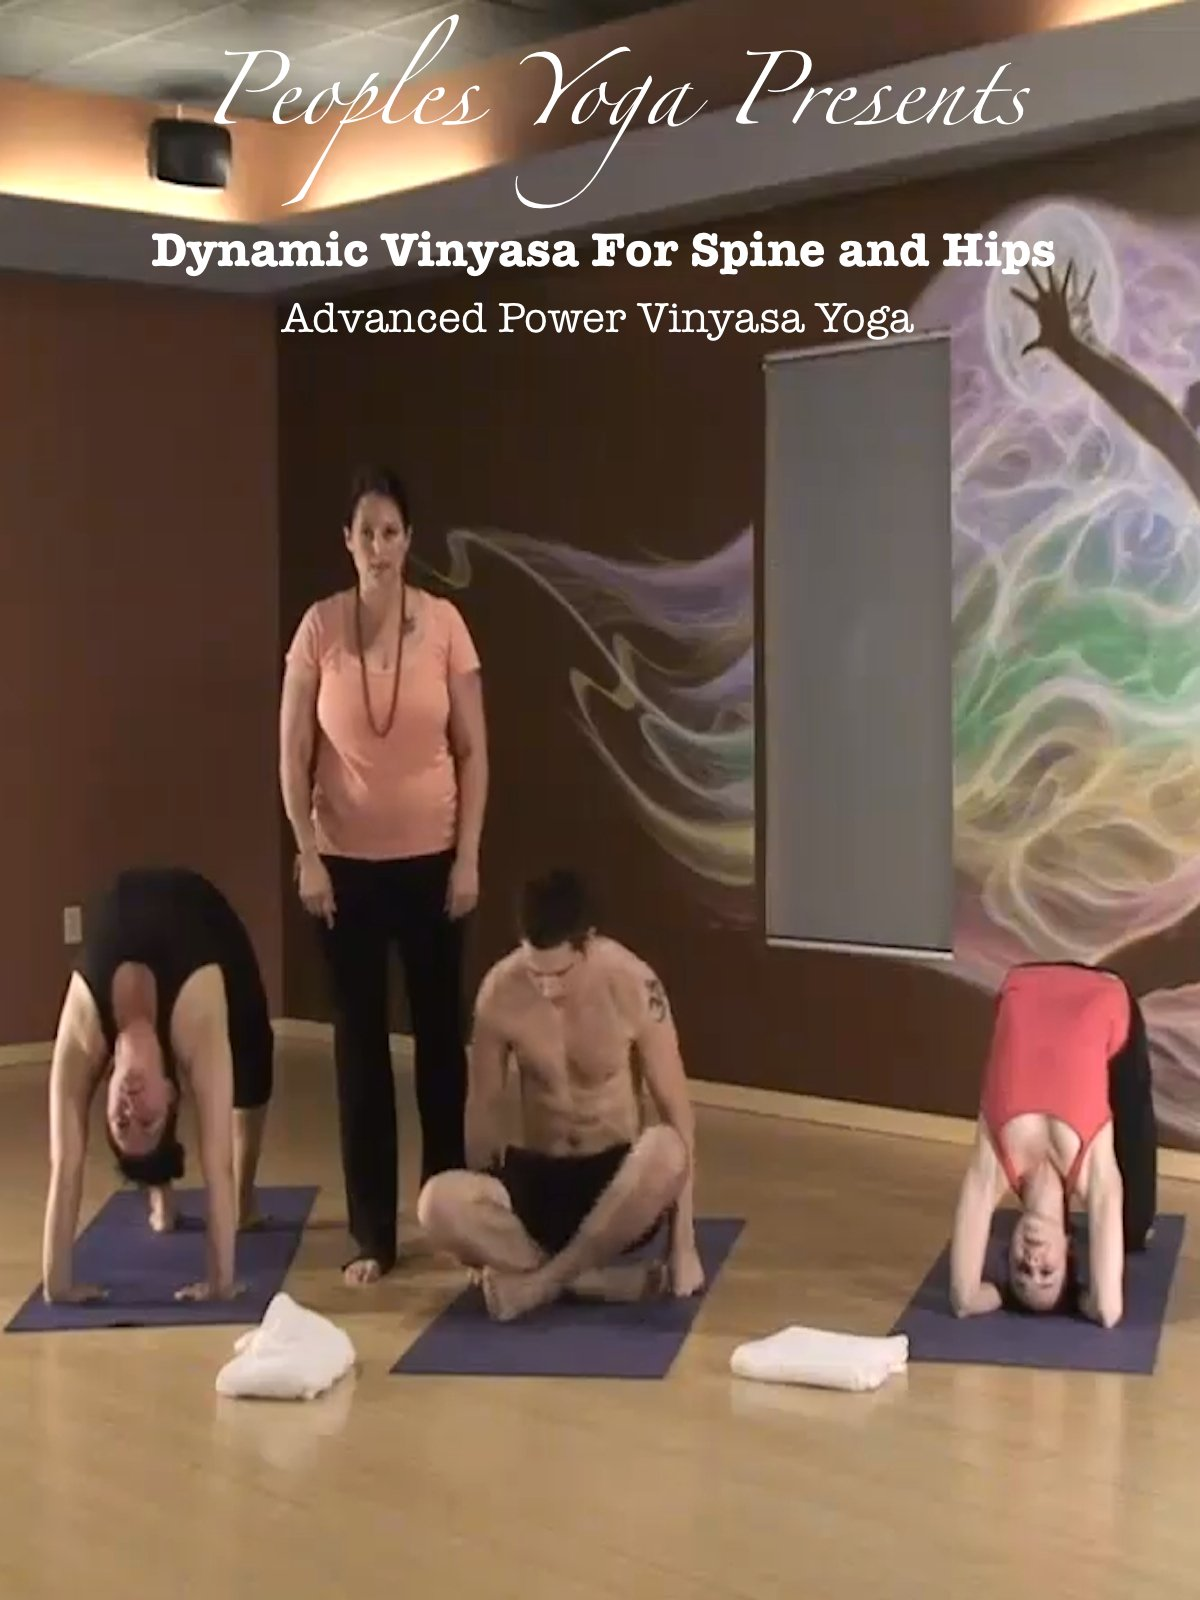 Amazon.com: Peoples Yoga Presents; Dynamic Vinyasa for Spine ...